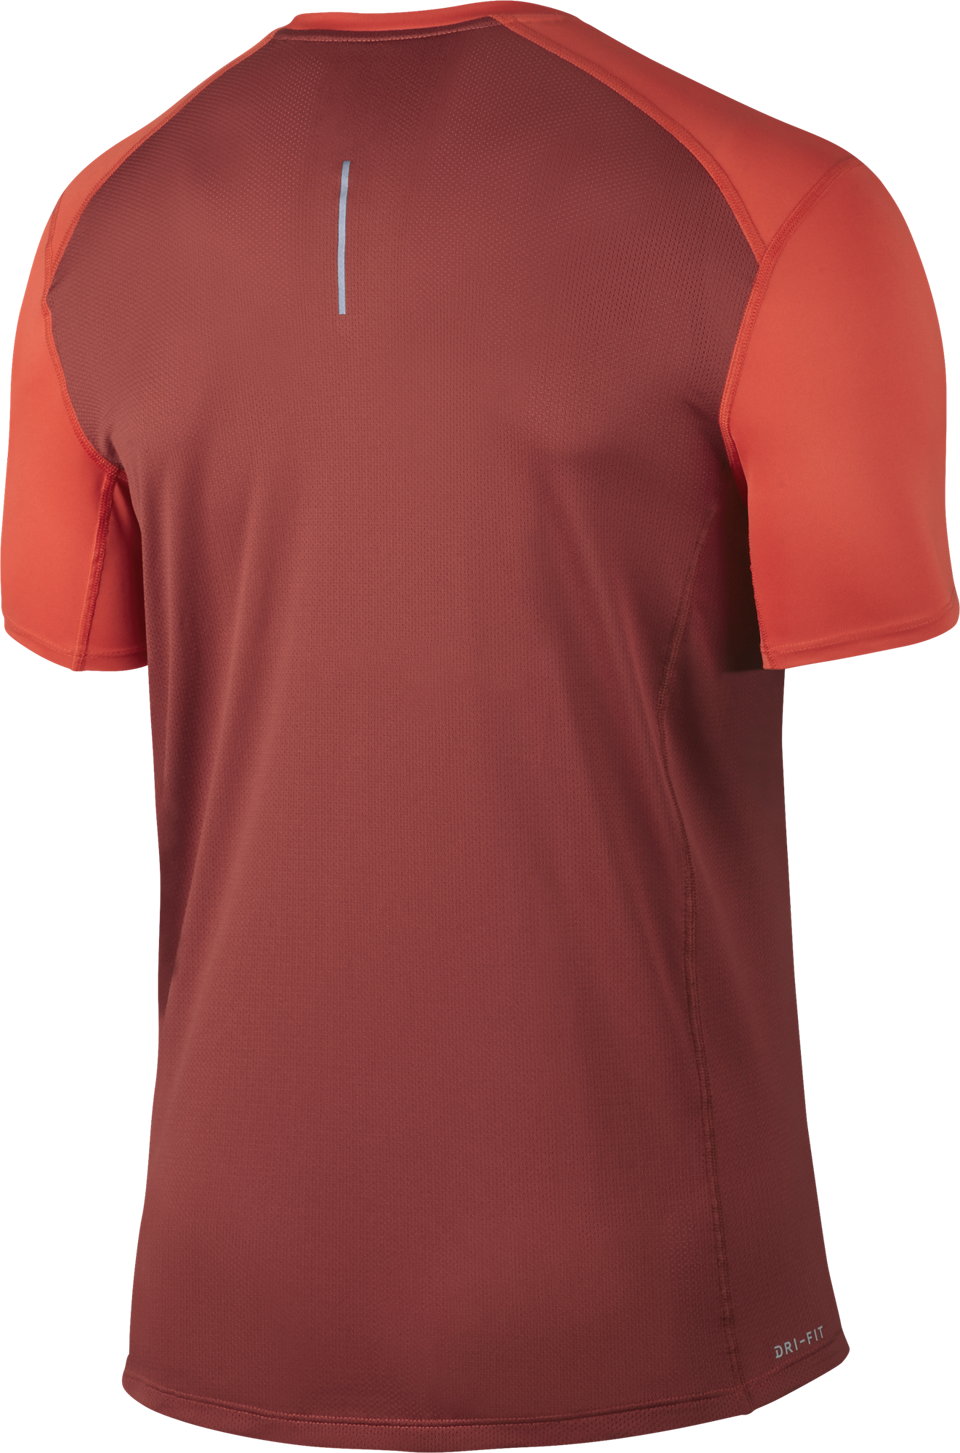 Nike Men's Dry Miler Top Short Sleeve Max Orange